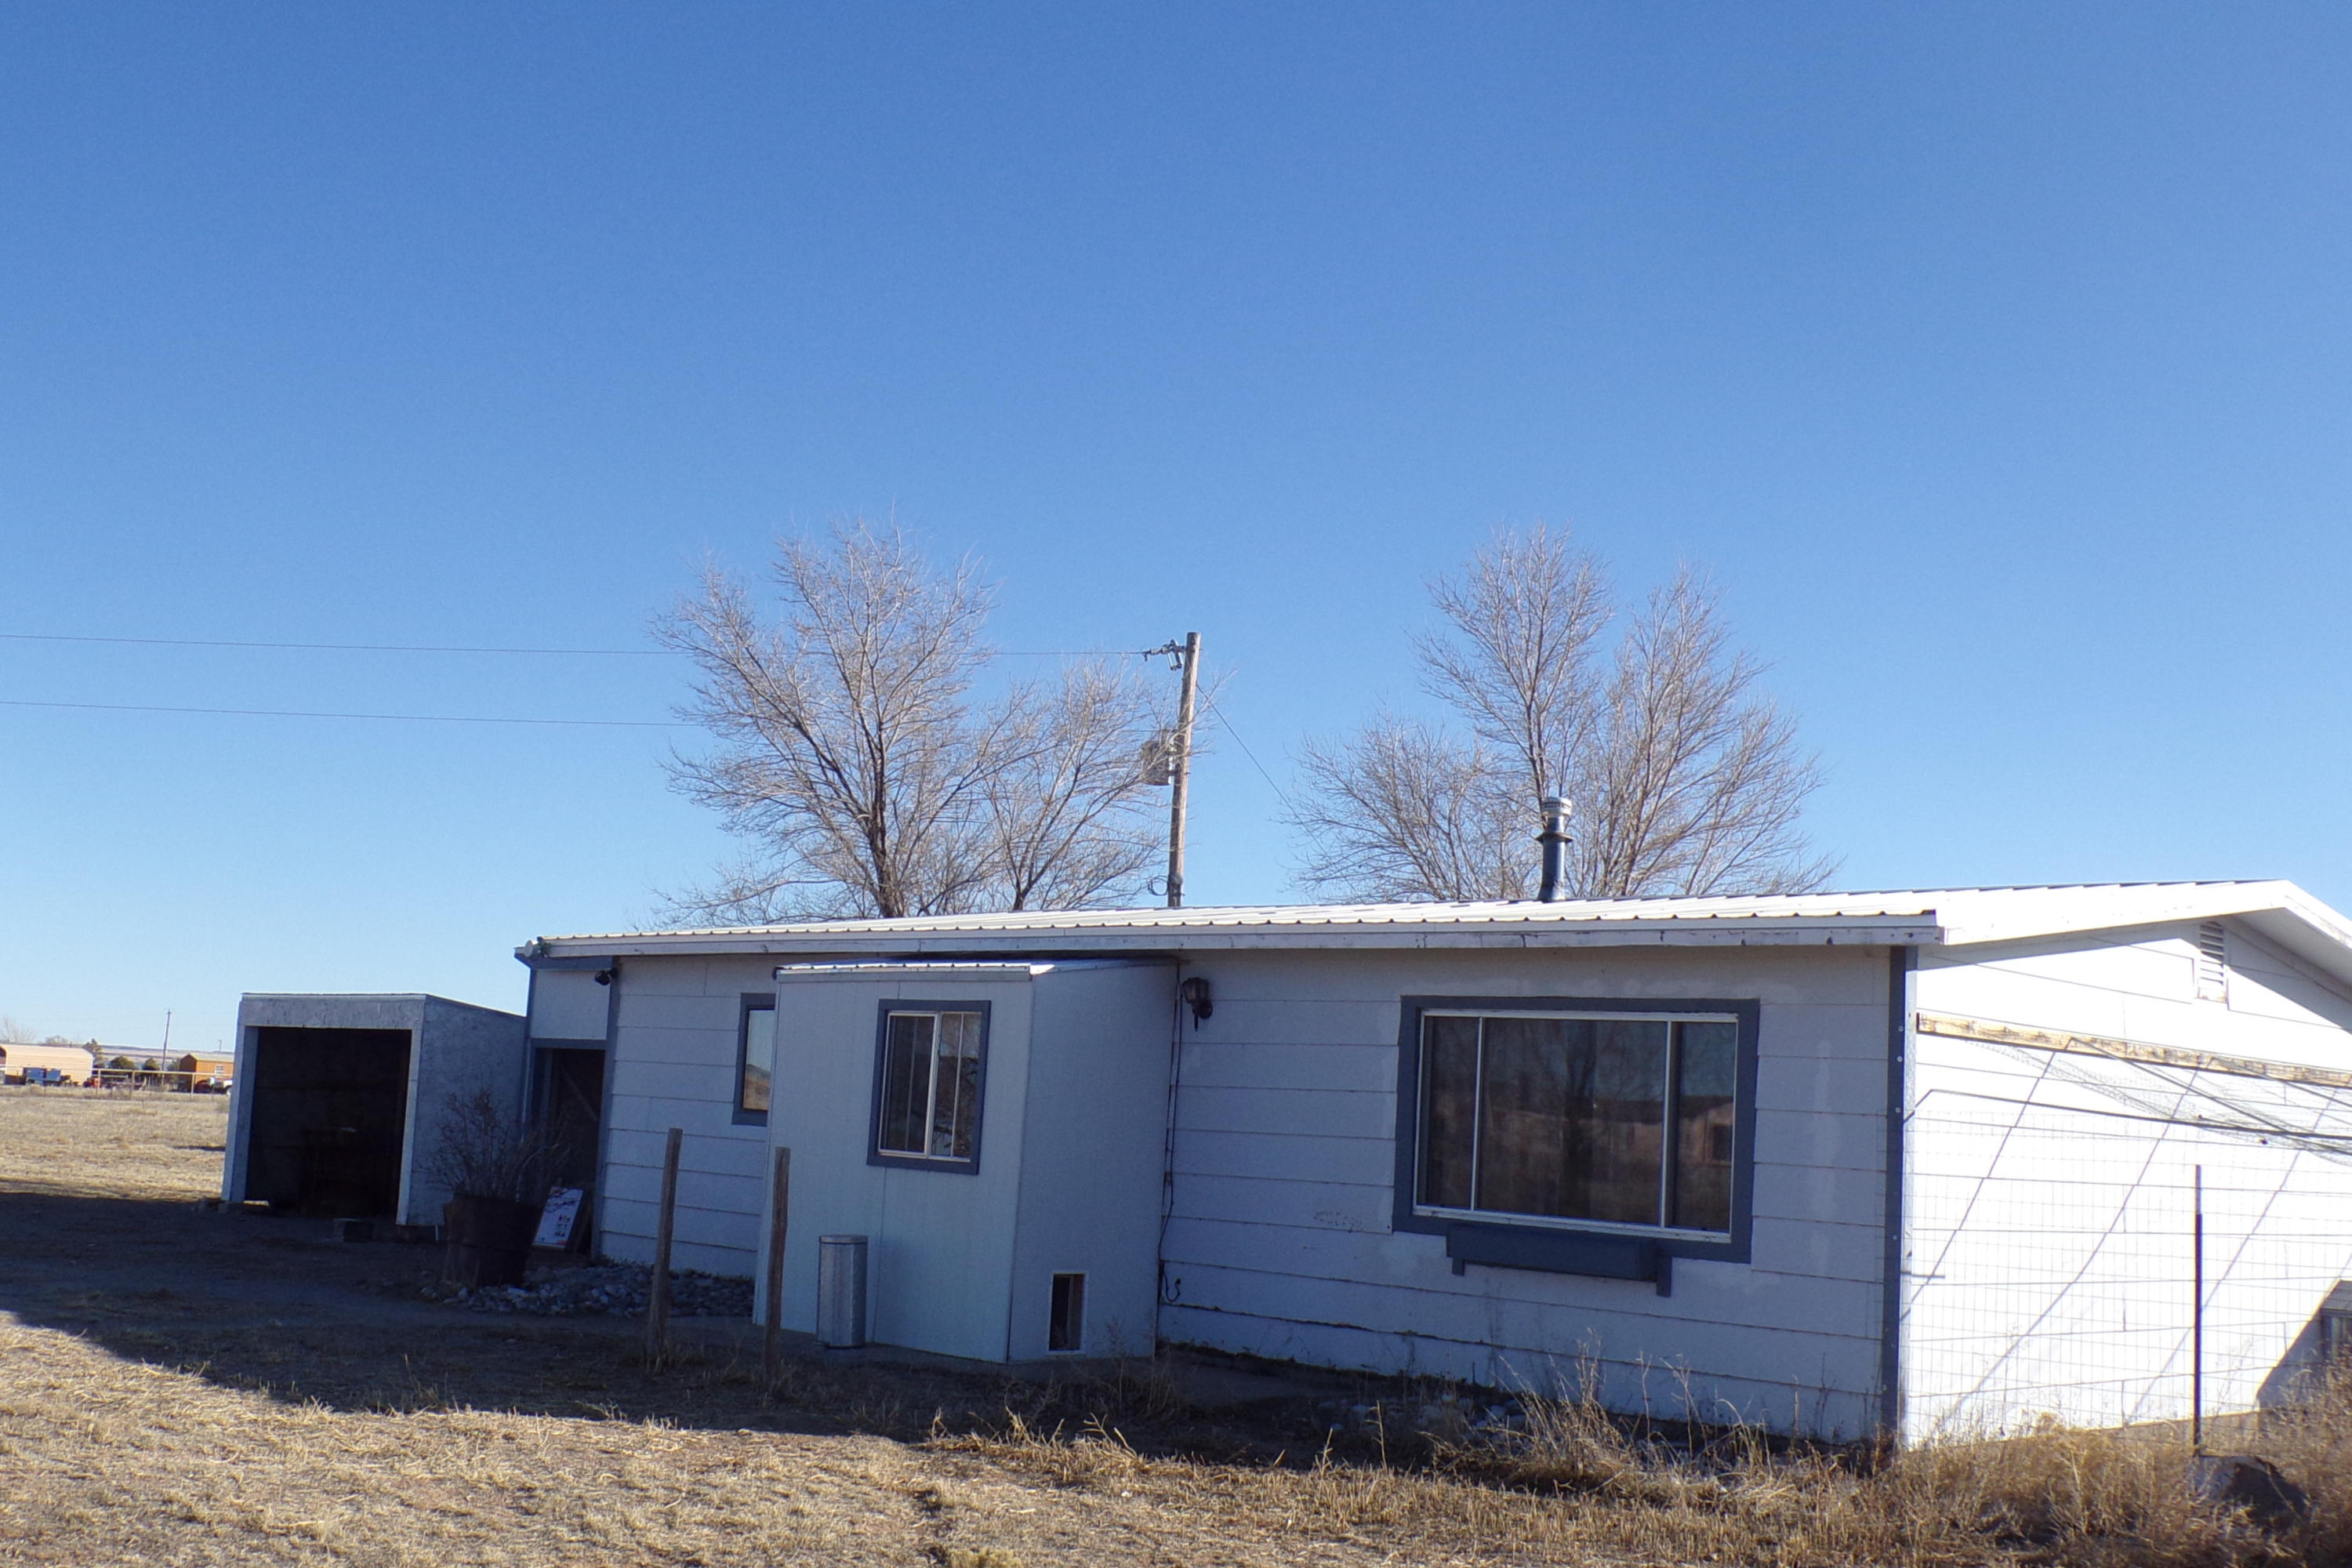 This Moriarty, NM country home on 5 acres is fully fenced and is an easy commute to either Albuquerque or Santa Fe. The home has new wood laminate flooring throughout, fresh paint and a partial kitchen upgrade.  The 976 sf consist of 2 bedrooms and 2 bathrooms and would make a nice cozy home for two or three people. Outside there is a carport and storage area, horses are allowed and not to be missed are the beautiful mountain views that feature the Southwest famous sunrises and sunsets. Just 35 minutes to Albuquerque.